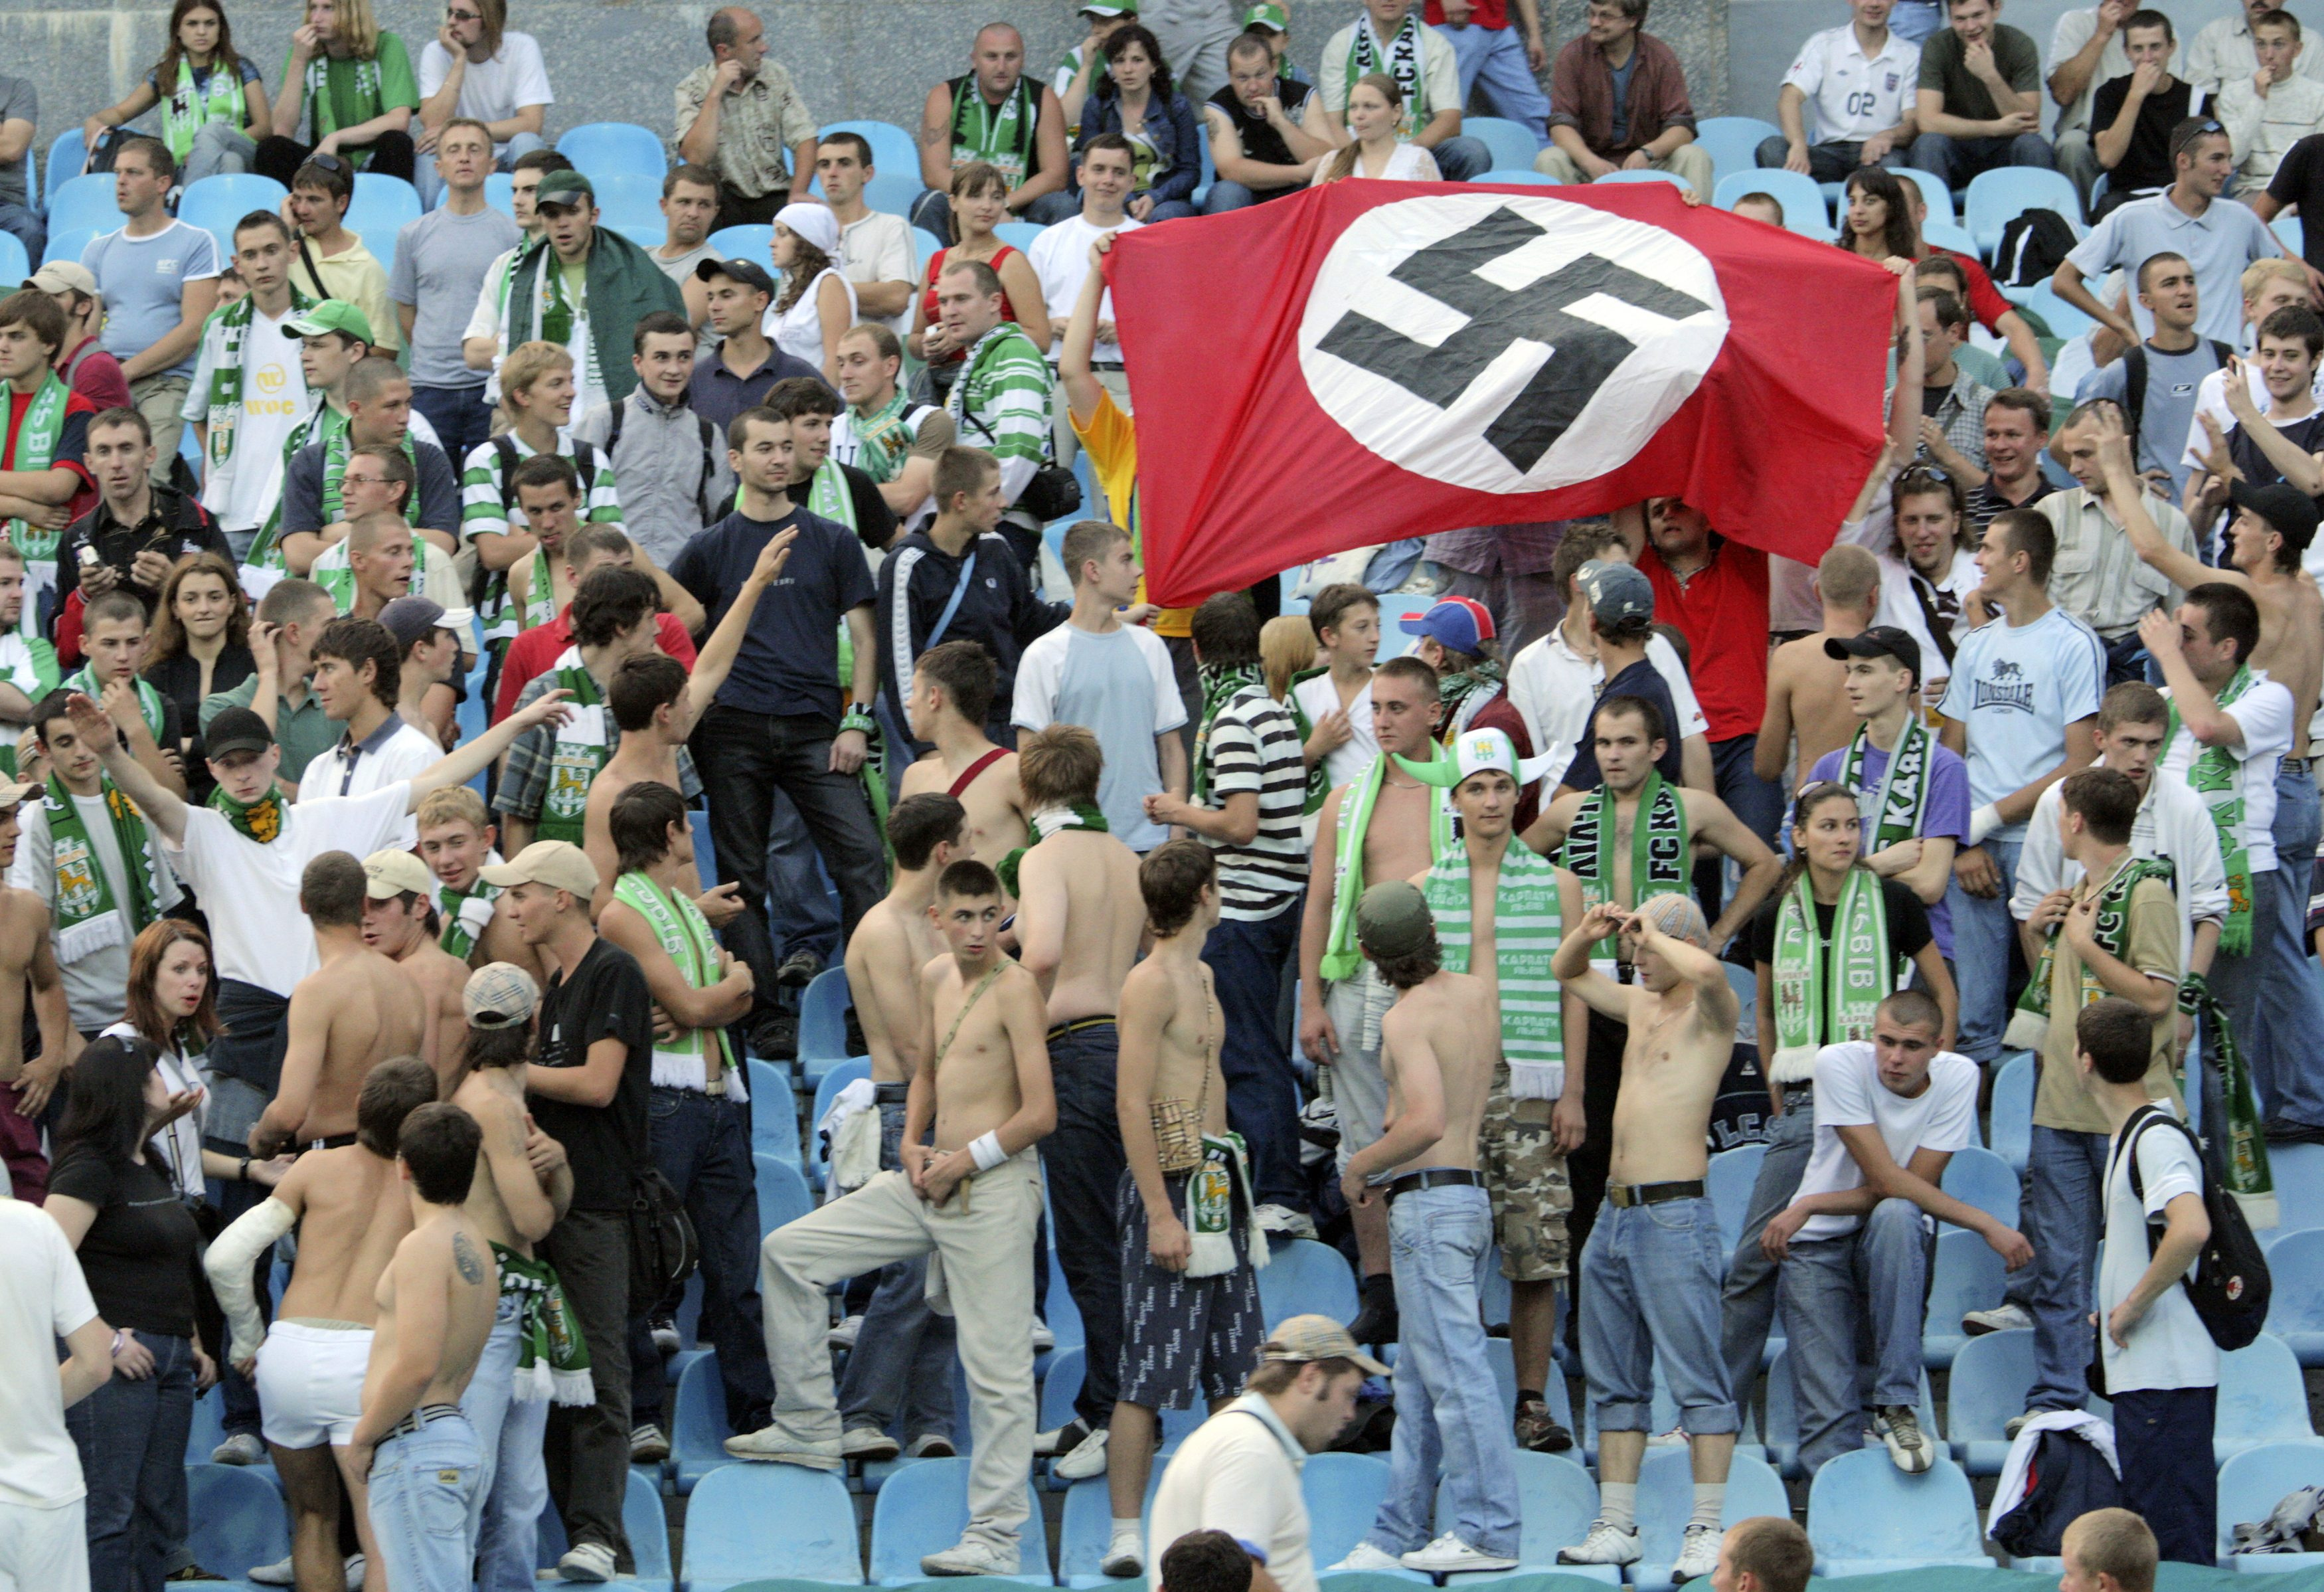 Supporters of Karpaty Lviv hold a German Nazi flag with a swastika as they attend a soccer match against Dynamo Kiev in Kiev August 19, 2007. Poland and Ukraine denounced British press allegations of racism and mob violence at soccer stadiums and assured foreign footballers and fans on May 29, 2012 that they would be safe during the Euro 2012 tournament they will jointly host in June 2012. A BBC Panorama investigative programme on soccer violence filmed in their countries, which aired on May 28, 2012 contained footage of fans giving Nazi salutes, taunting black players with monkey noises, anti-Semitic chants and a group of Asian students being attacked at the Metalist Stadium in Kharkiv, one of the four Ukrainian cities which will be hosting matches. Picture taken August 19, 2007. REUTERS/Stringer/Files (UKRAINE - Tags: SPORT SOCCER CRIME LAW CIVIL UNREST) Picture Supplied by Action Images